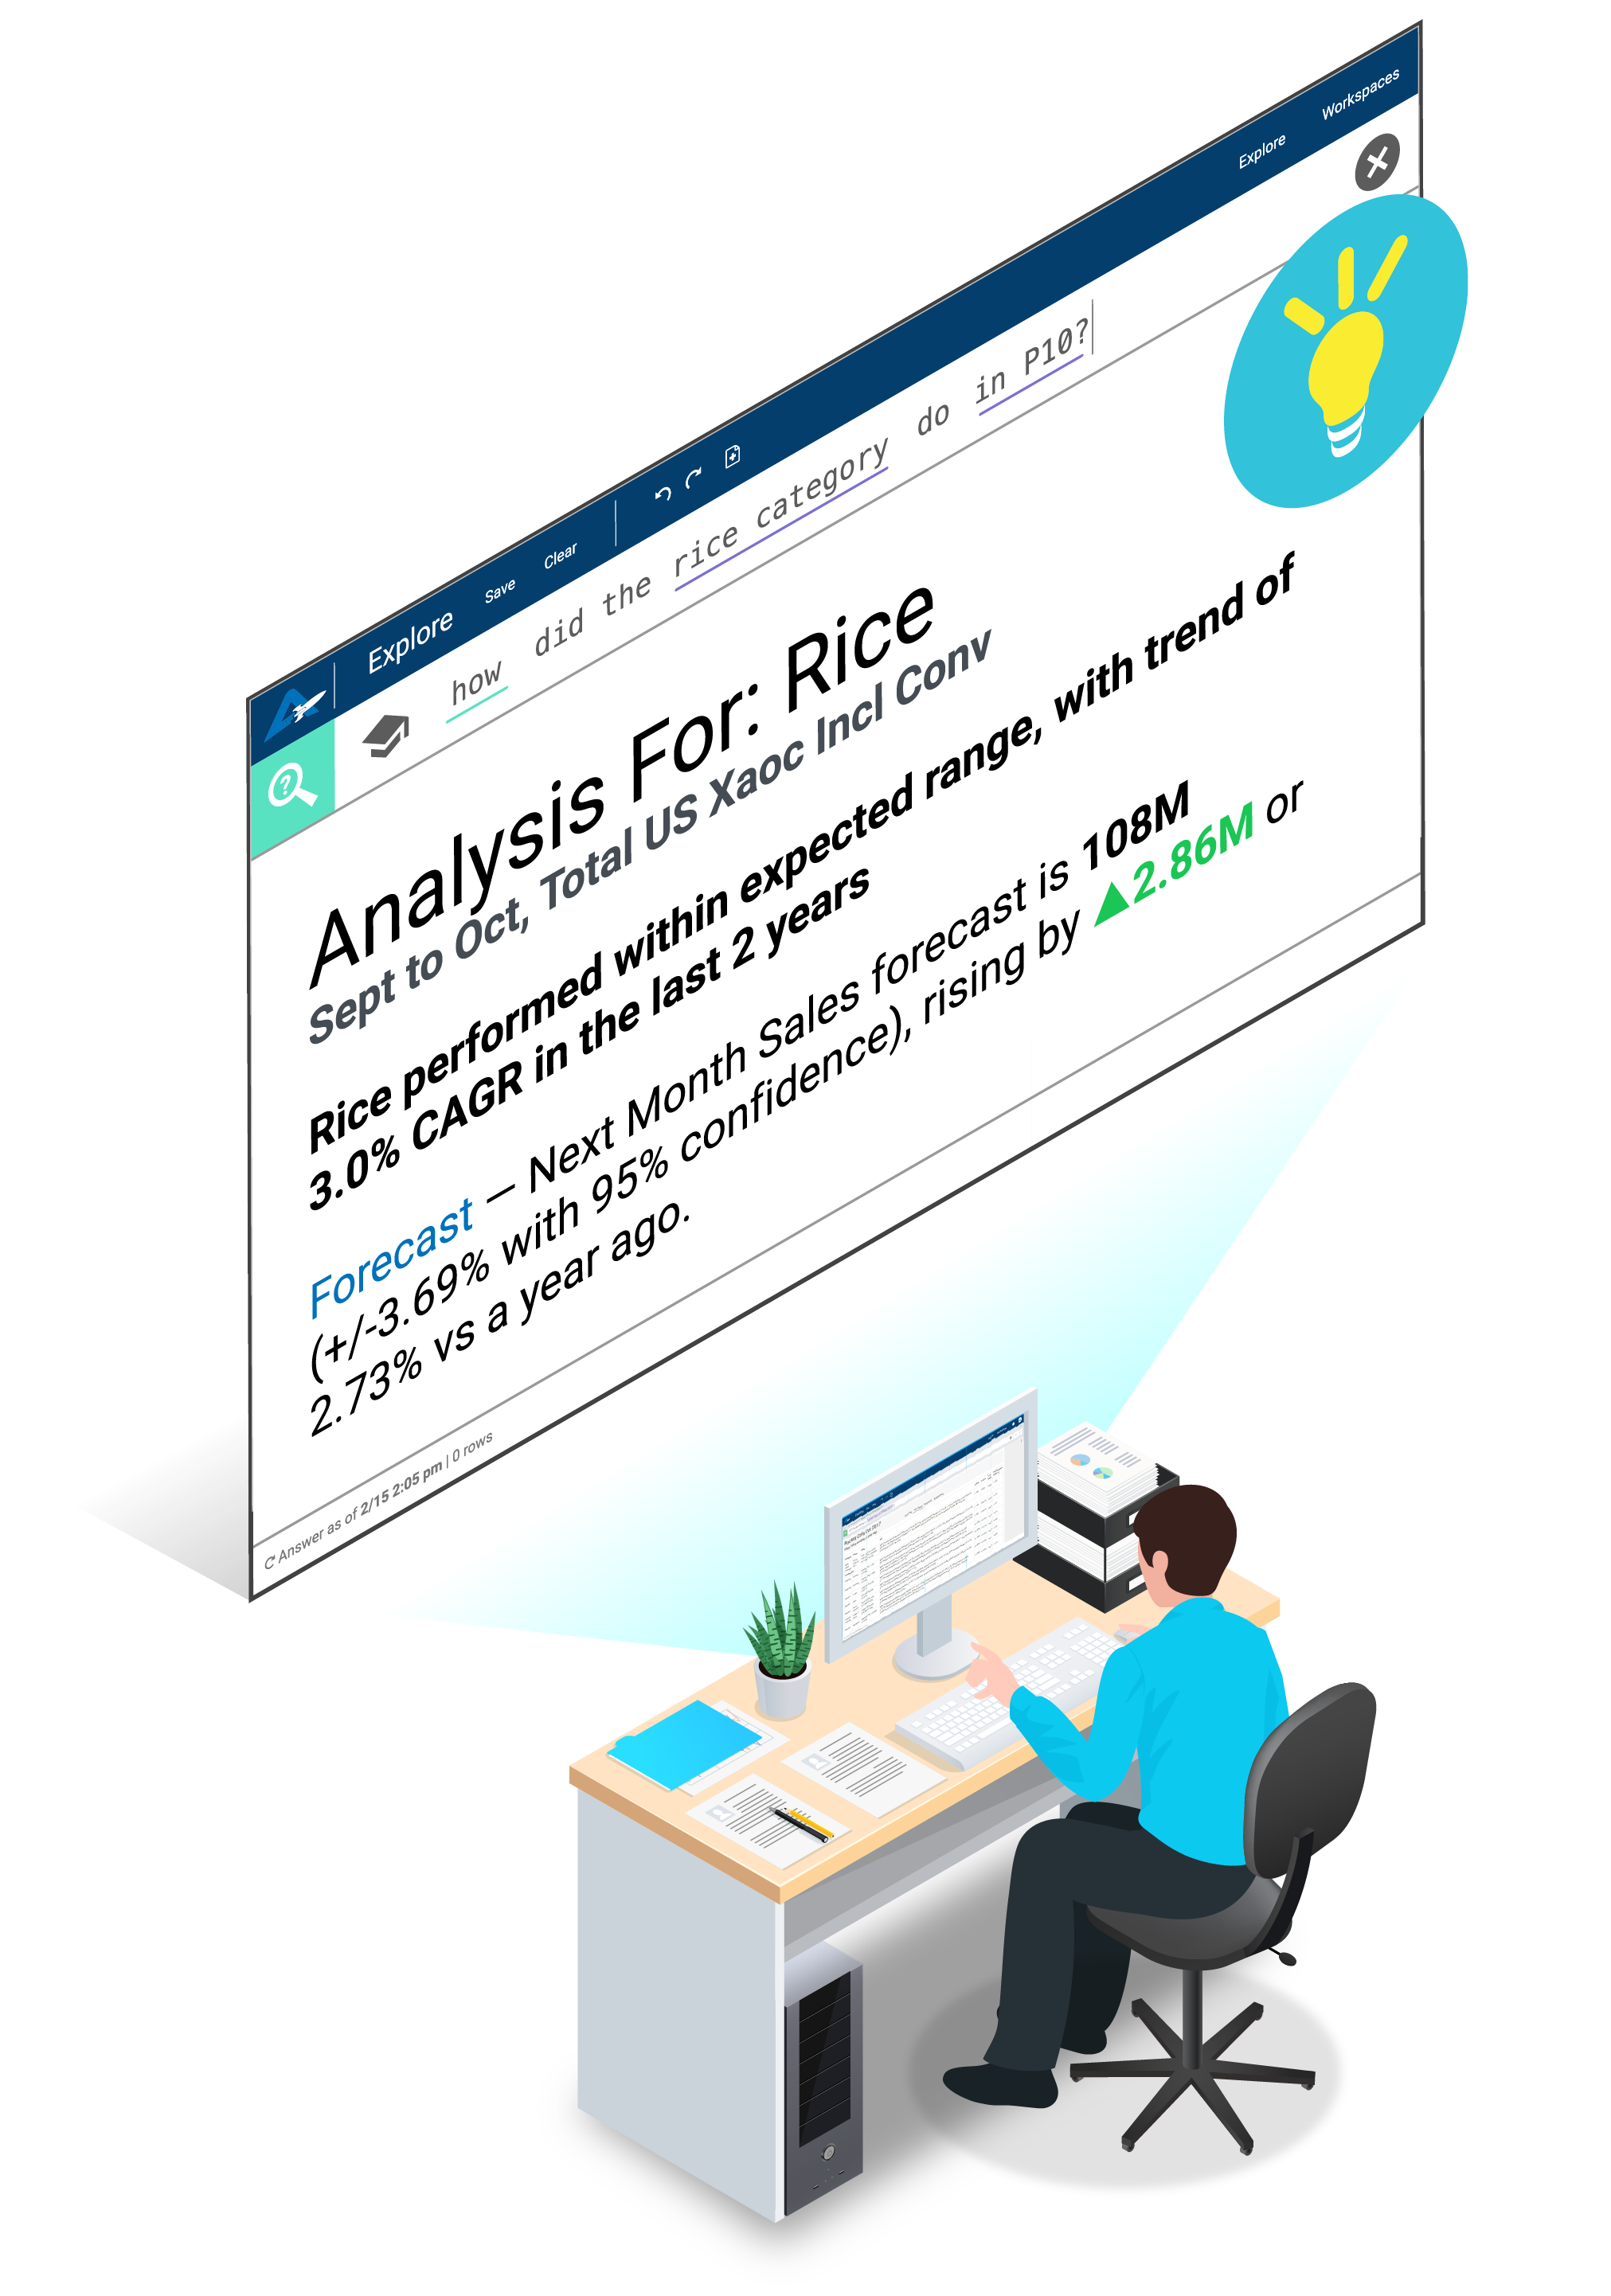 Augmented analytics return natural language insights that help business people understand their data.